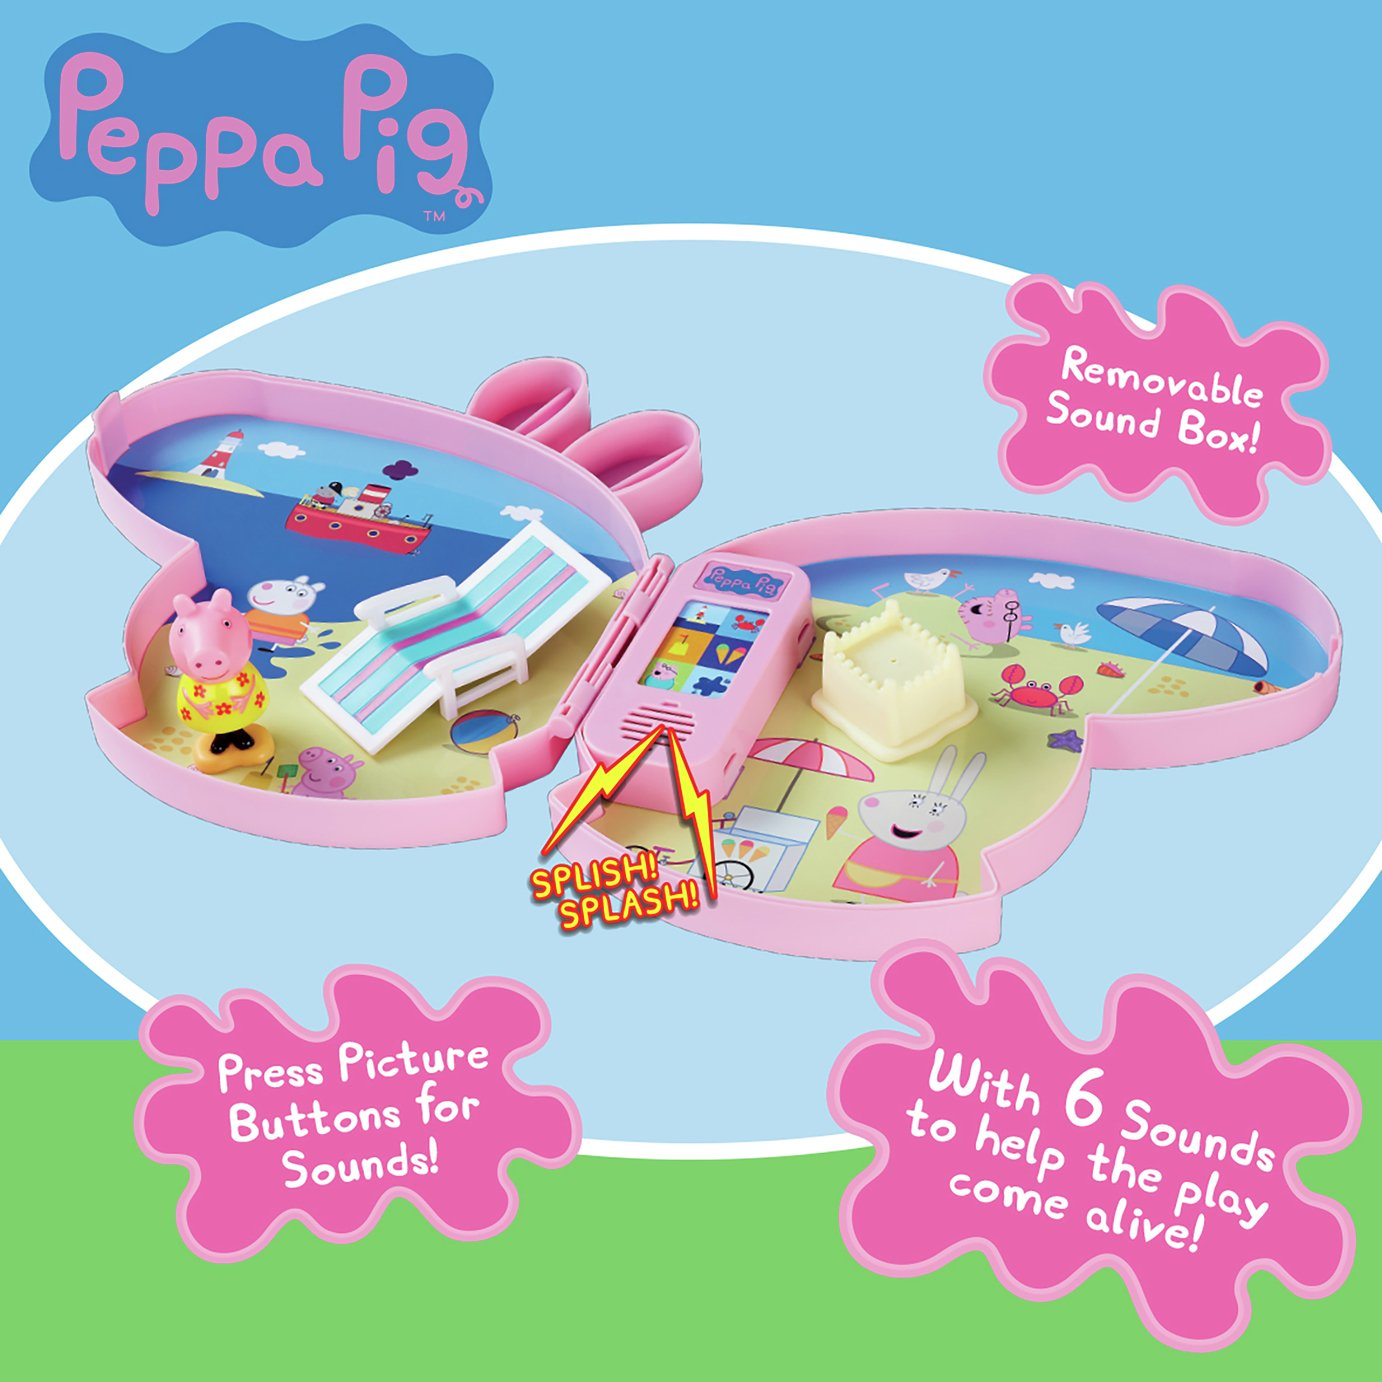 Peppa Pig Pick-Up and Play Playset Assortment